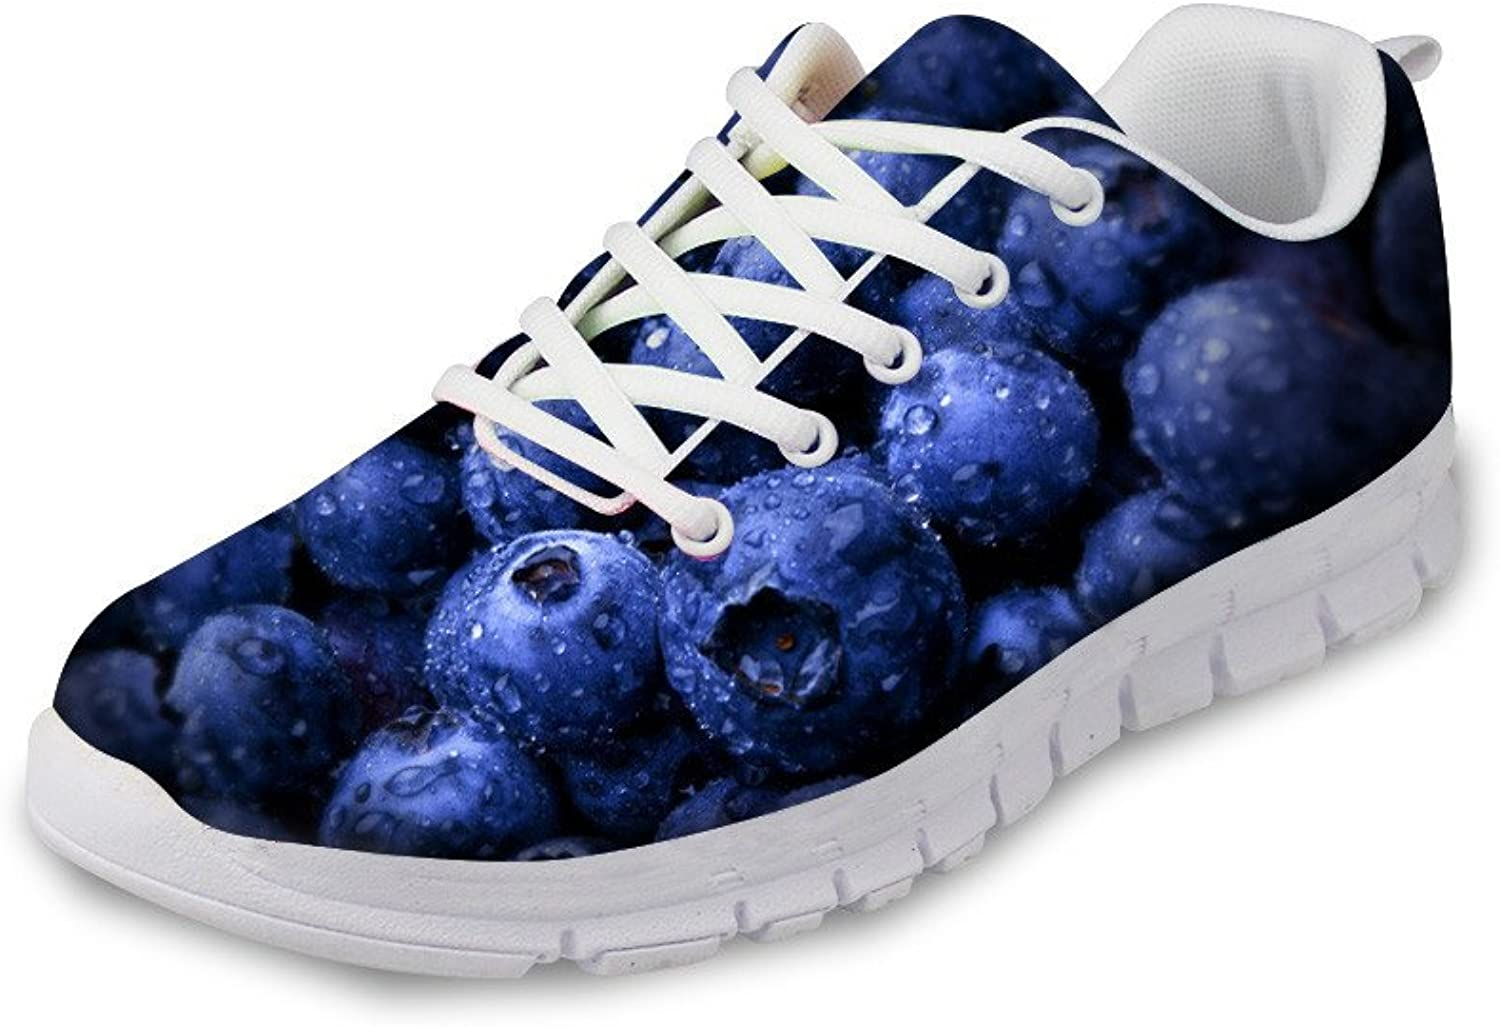 Frestree Breathable Lace up Trainer Athletic Breathable Sport shoes Girls Athletic Sneakers